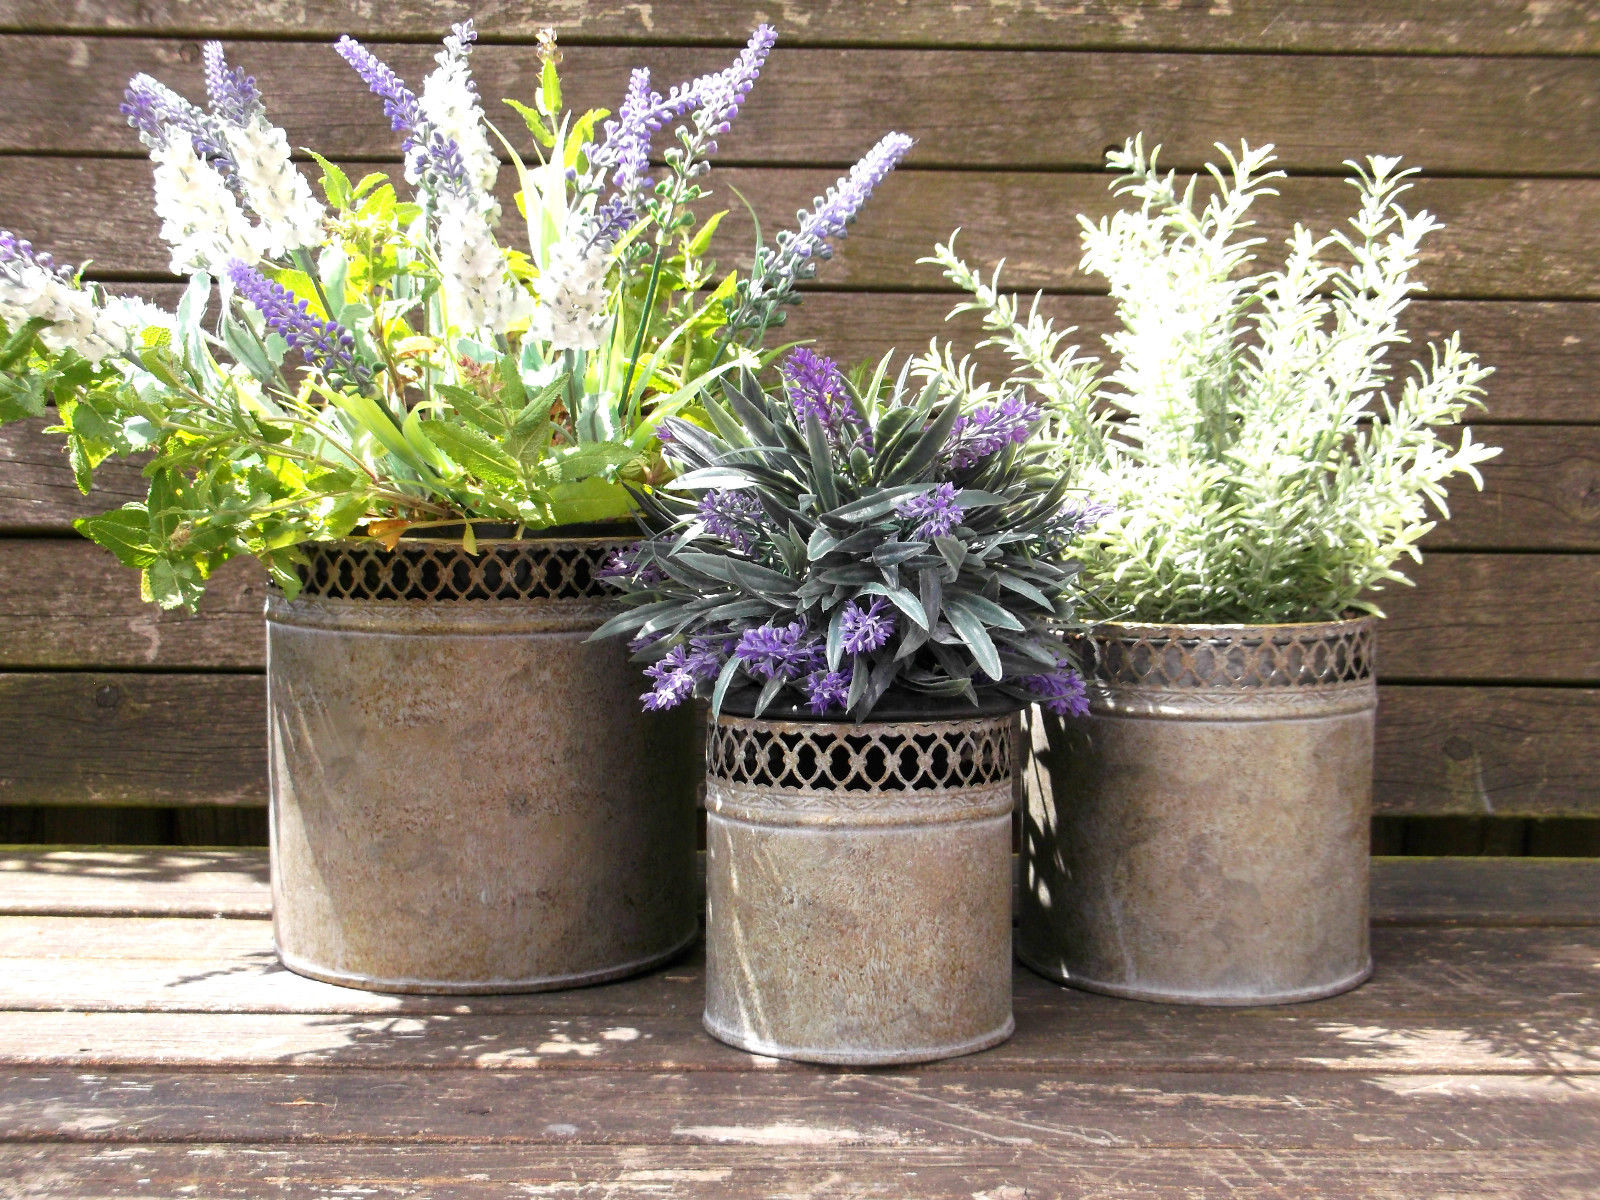 planters c day planter img worldstores rectangular from next grigio htm garden delivery florenity